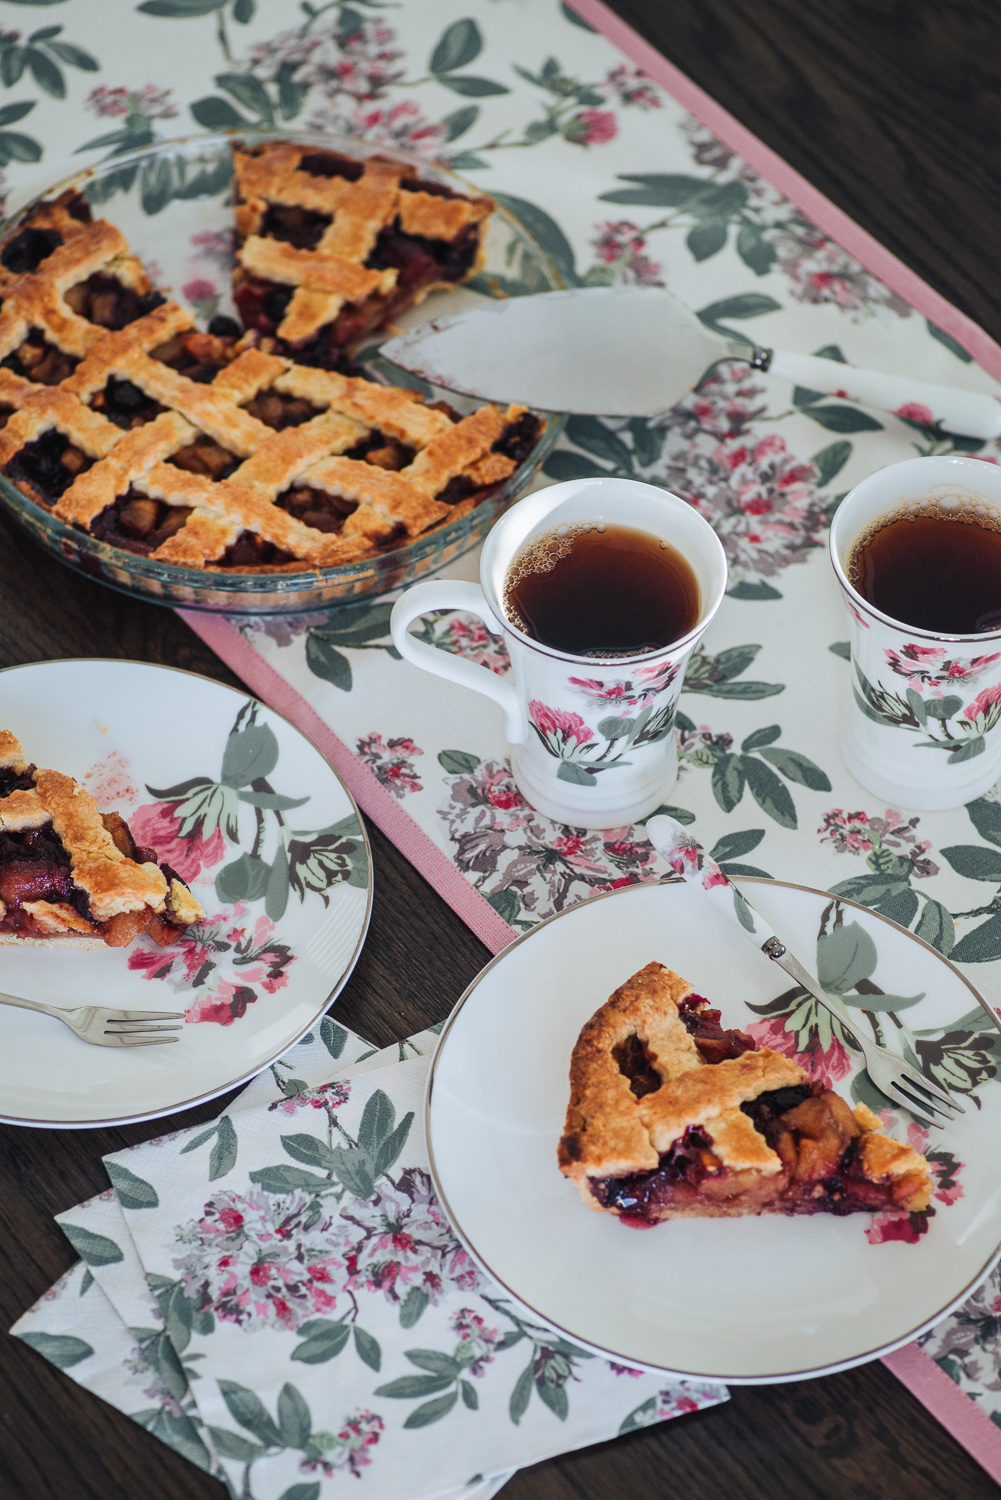 Apple and Blueberry Pie recipe with an Italian crostata style pastry crust